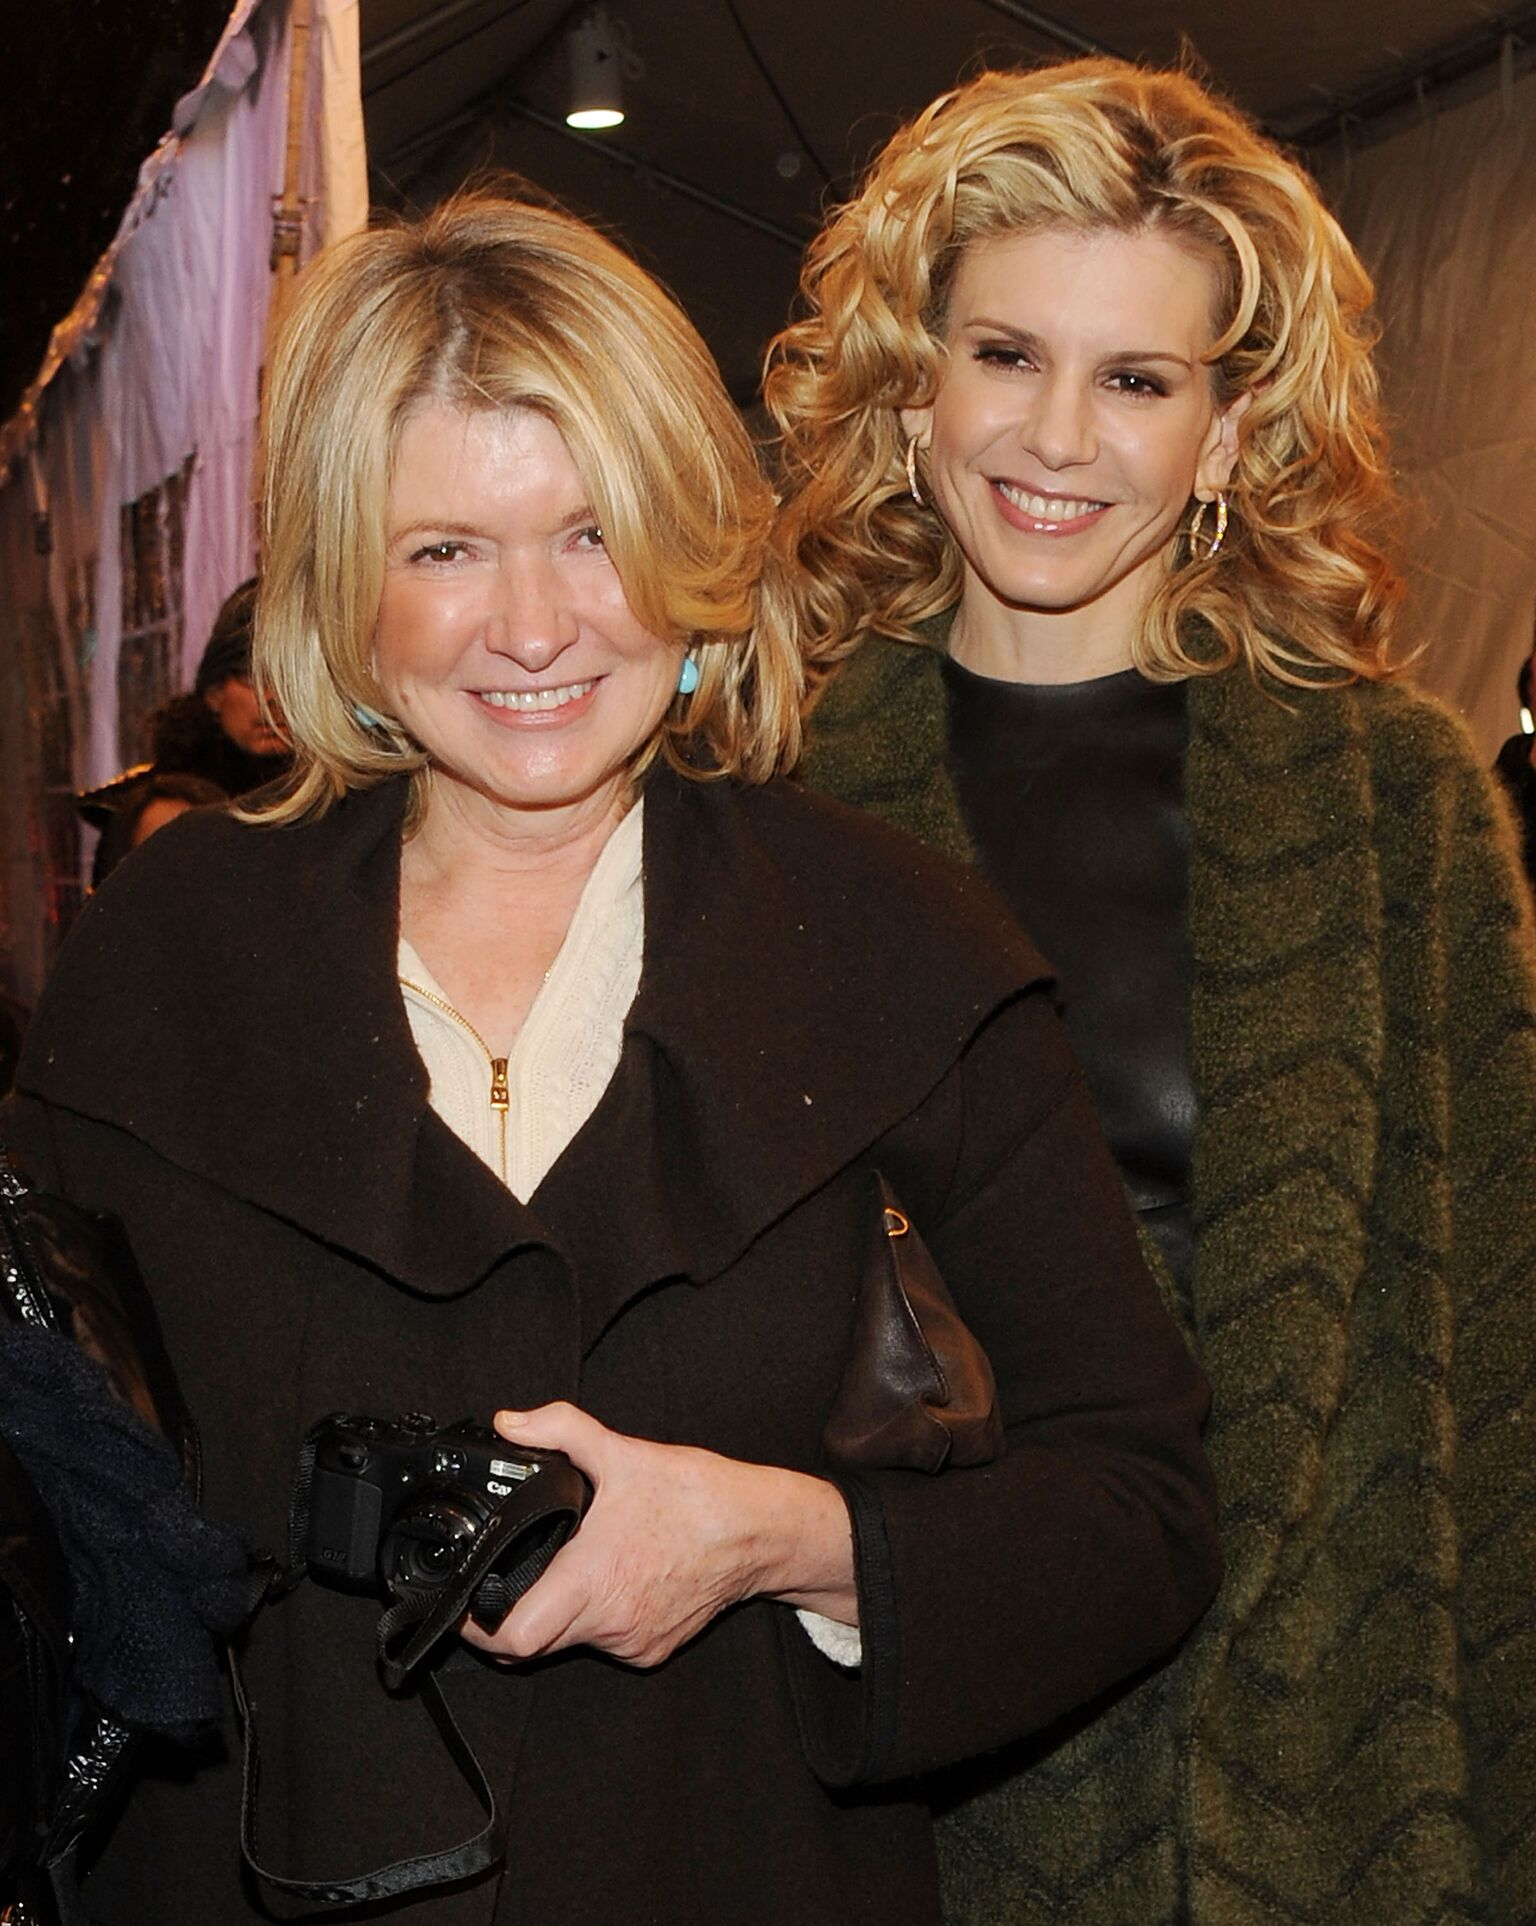 Martha Stewart and Alexis Stewart attend Paul McCartney plays World Famous Apollo Theater for first time, celebrating 20 Million Sirius XM Subscribers | Getty Images